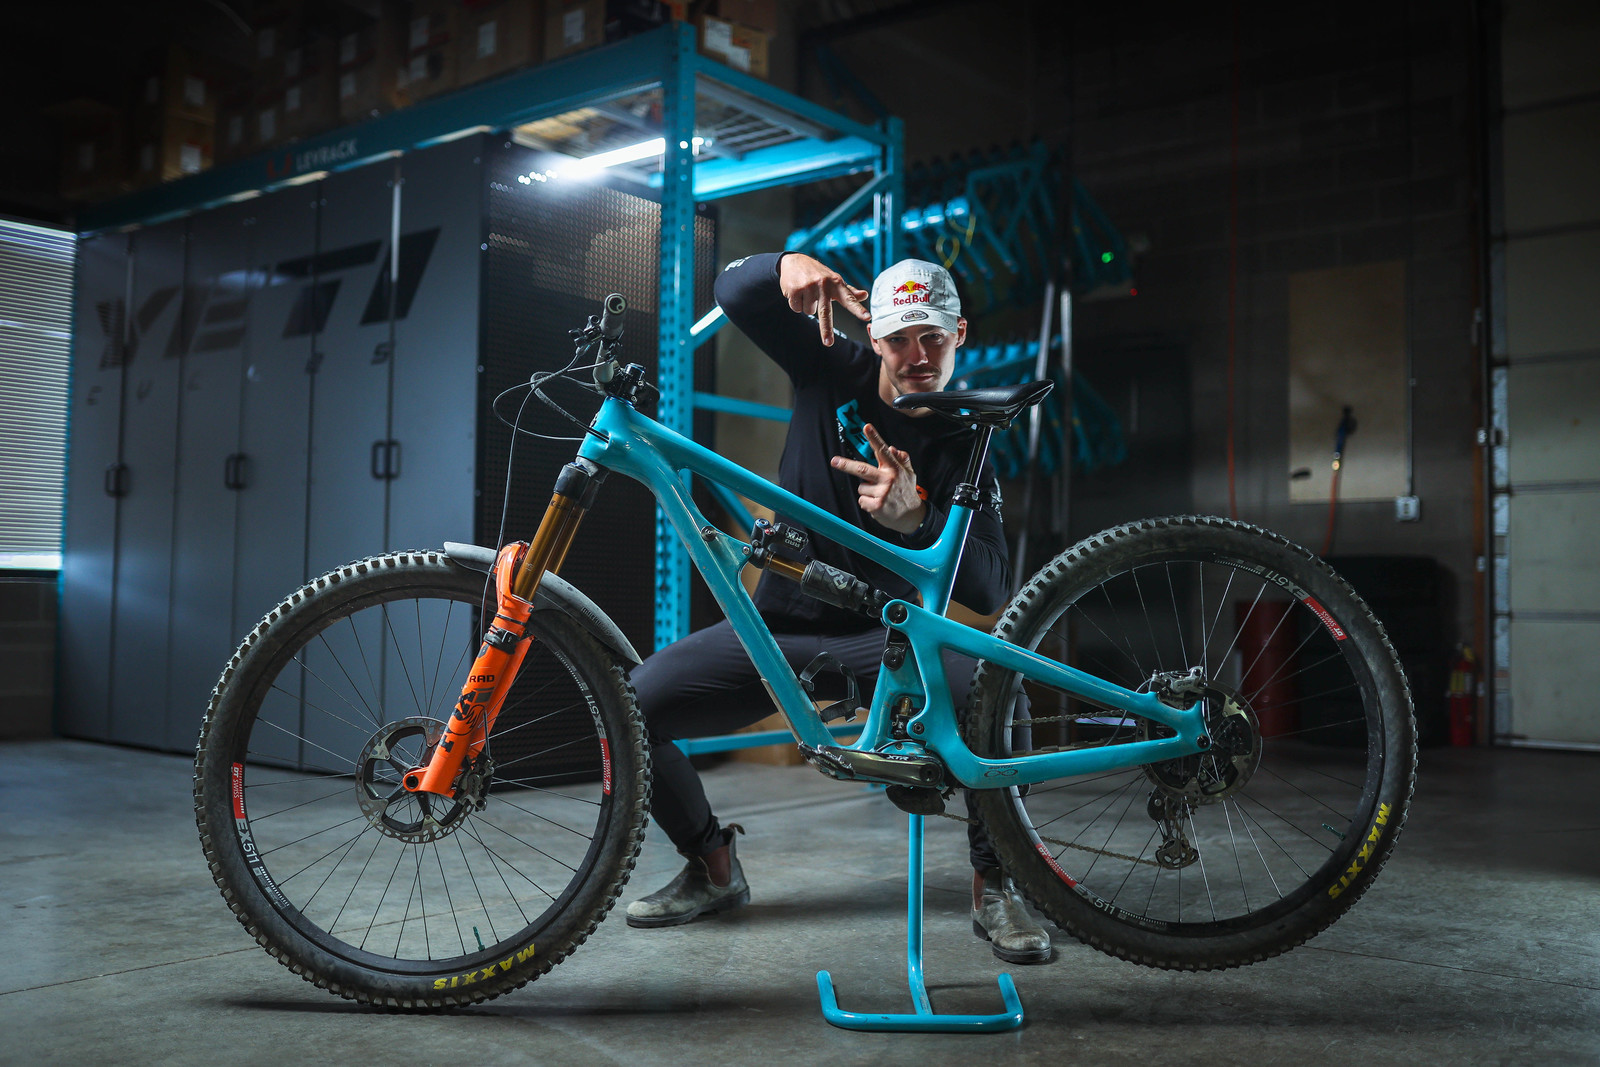 Richie Rude doing his best Turquoise Steel.